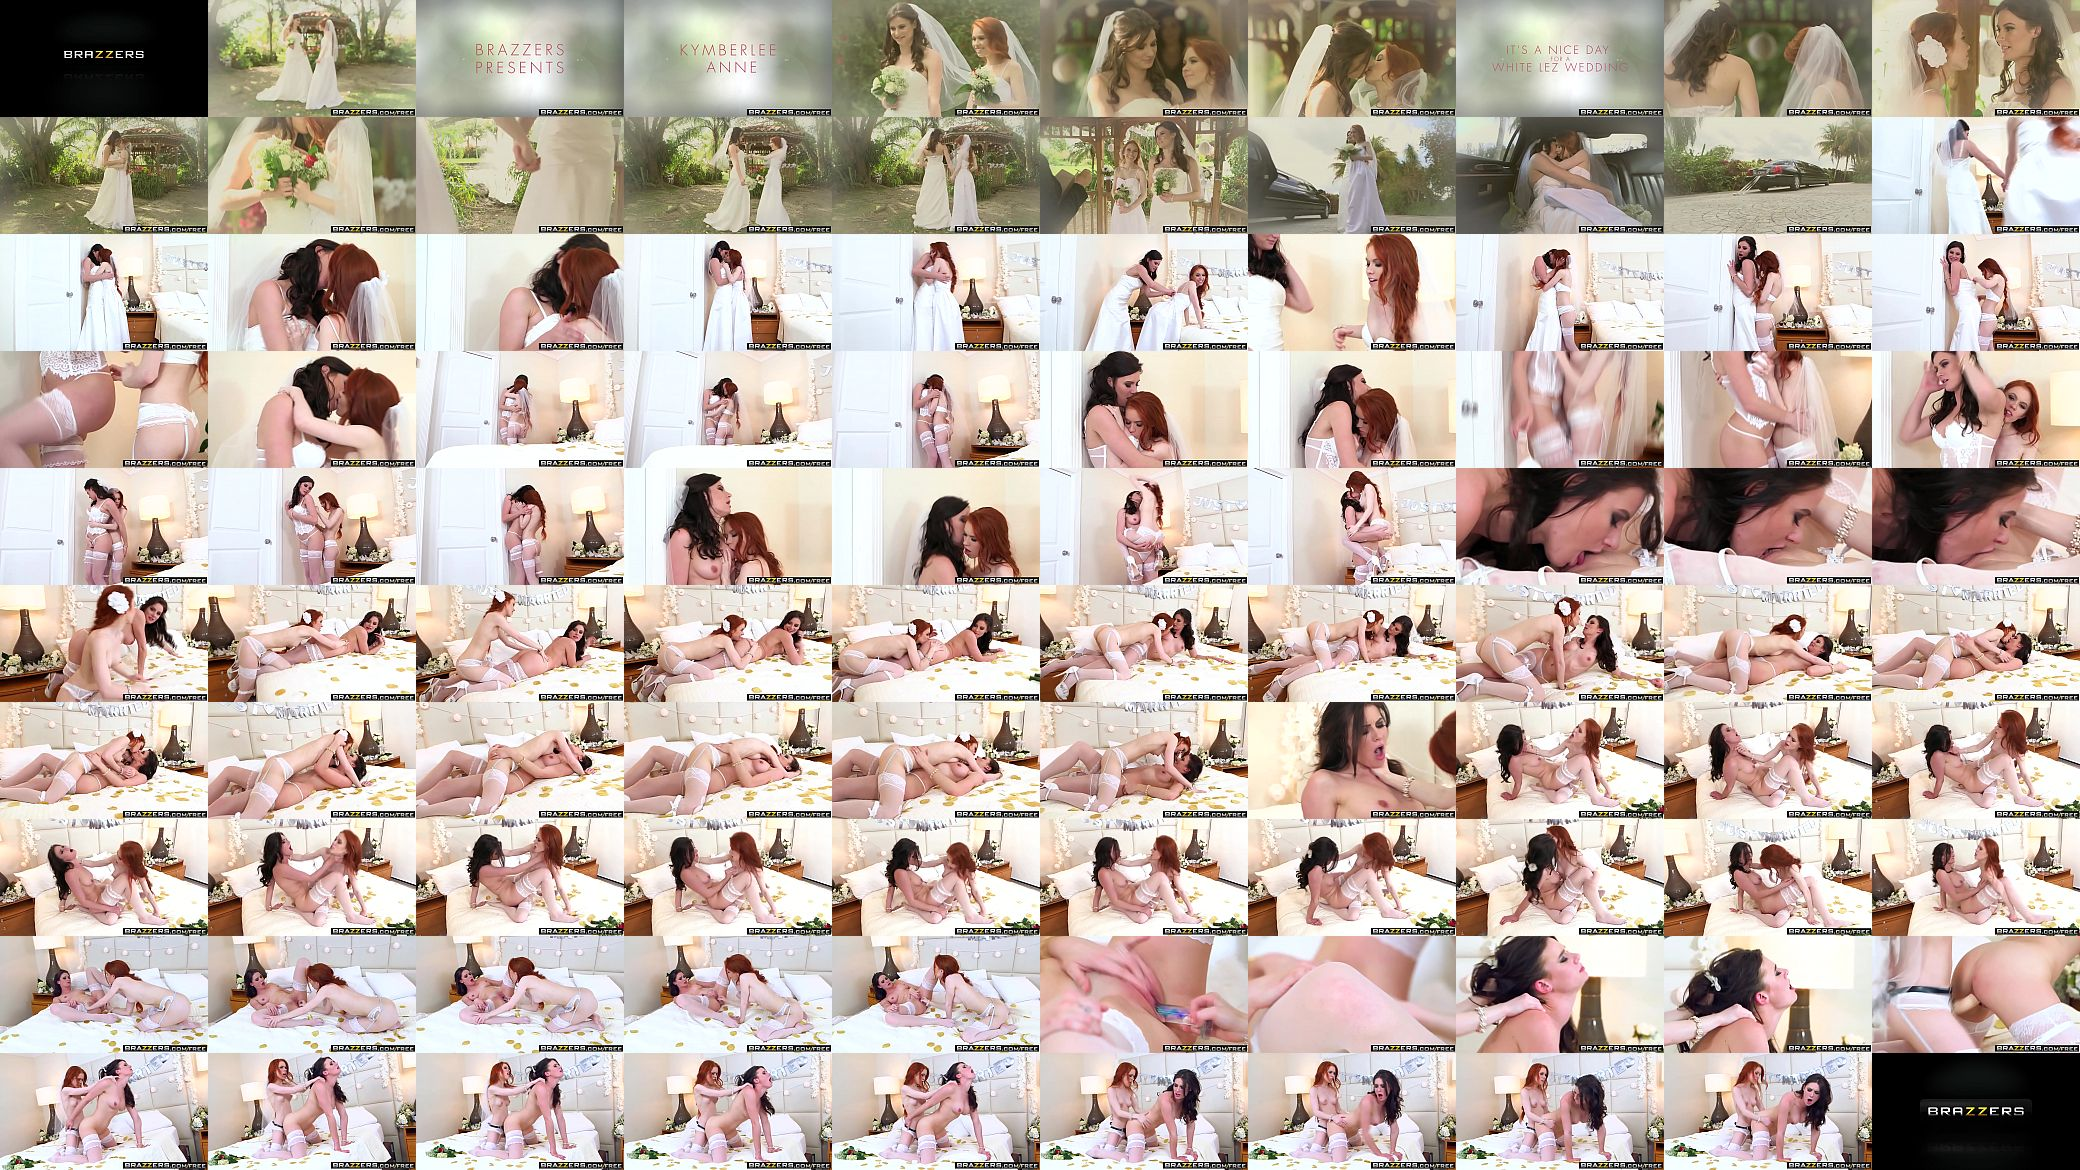 Brazzers - Its A Nice Day For A White Lez Wedding Dolly Little and  Kymberlee Anne - XNXX.COM